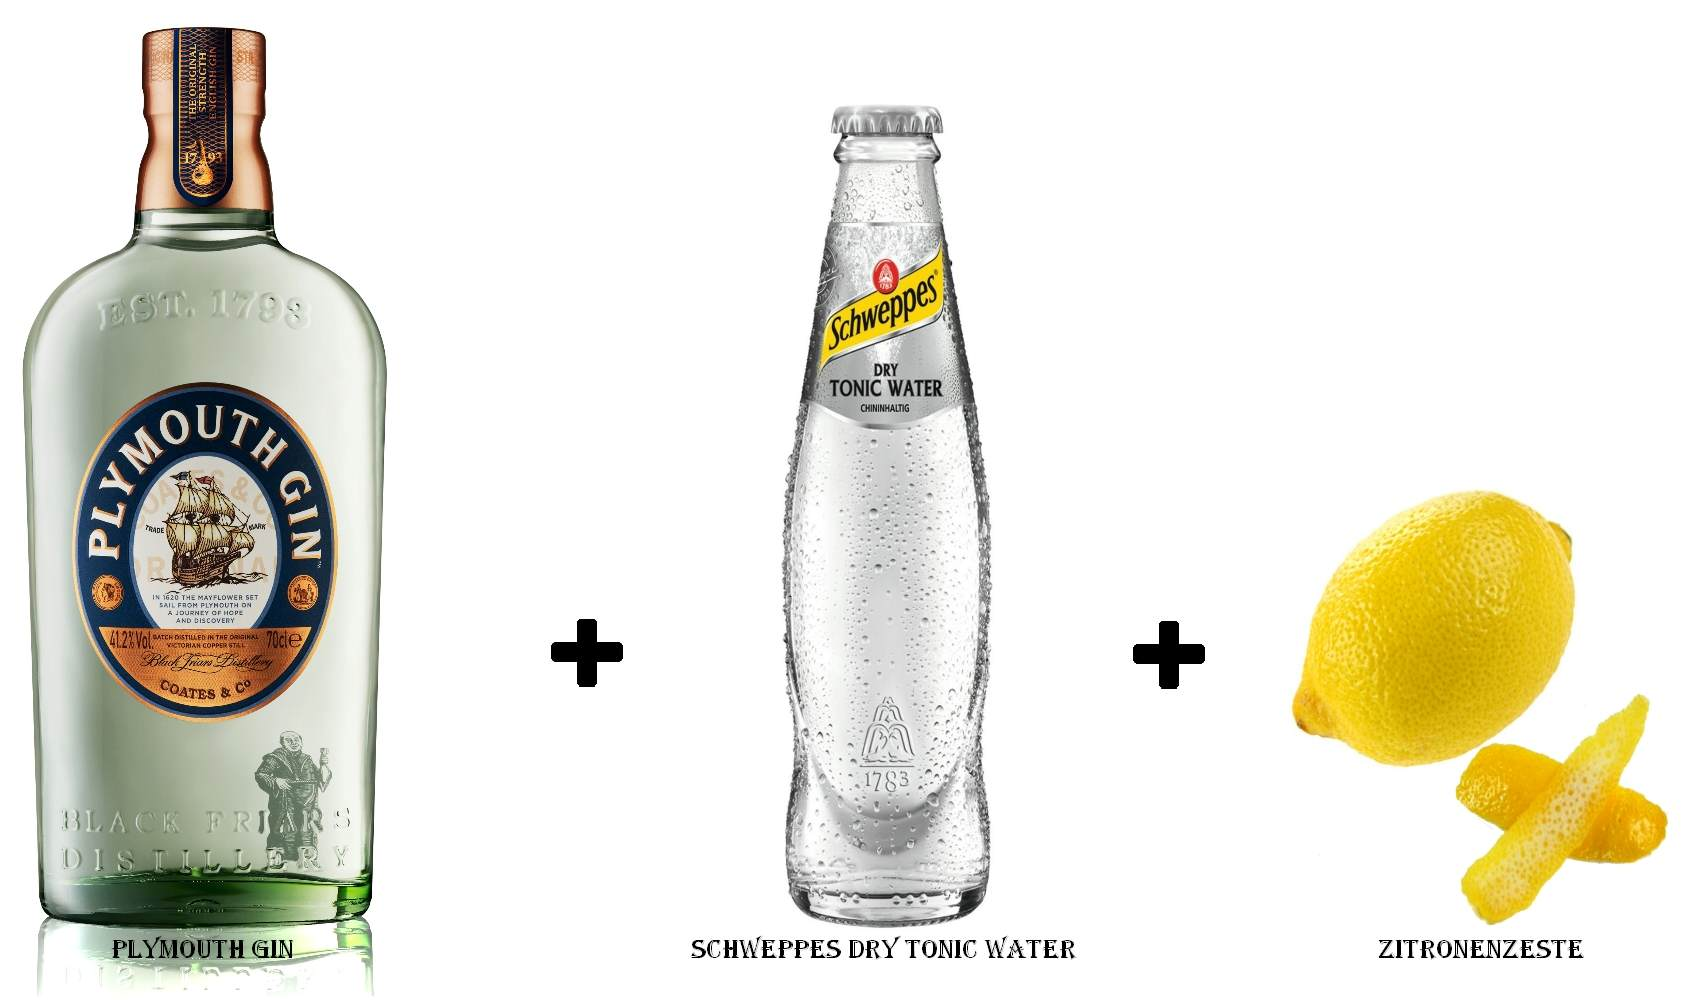 Plymouth Gin + Schweppes Dry Tonic Water + Zitronenzeste